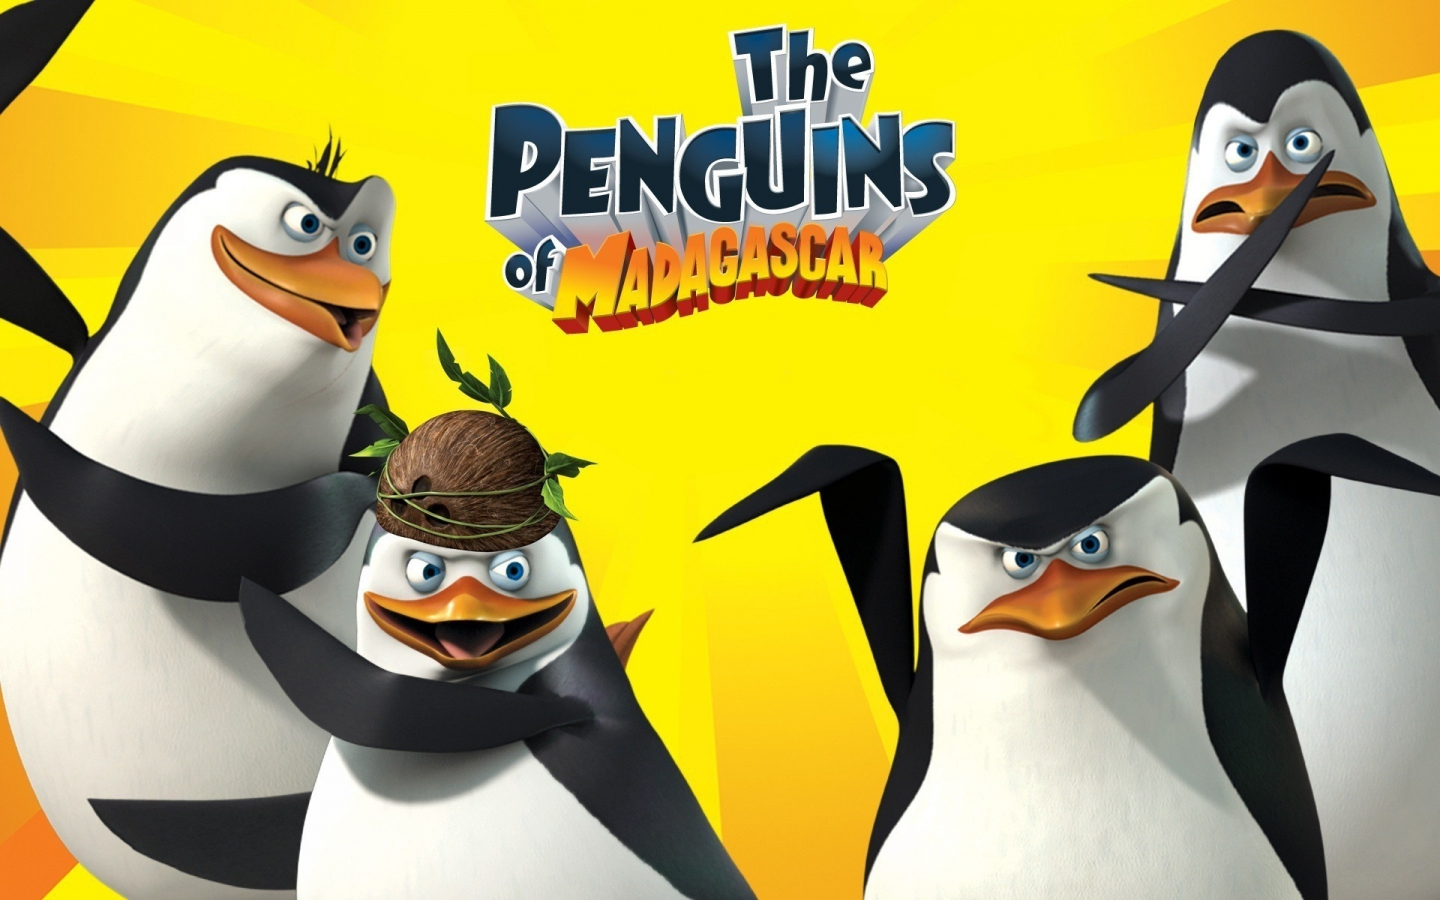 The Penguins Of Madagascar for 1440 x 900 widescreen resolution